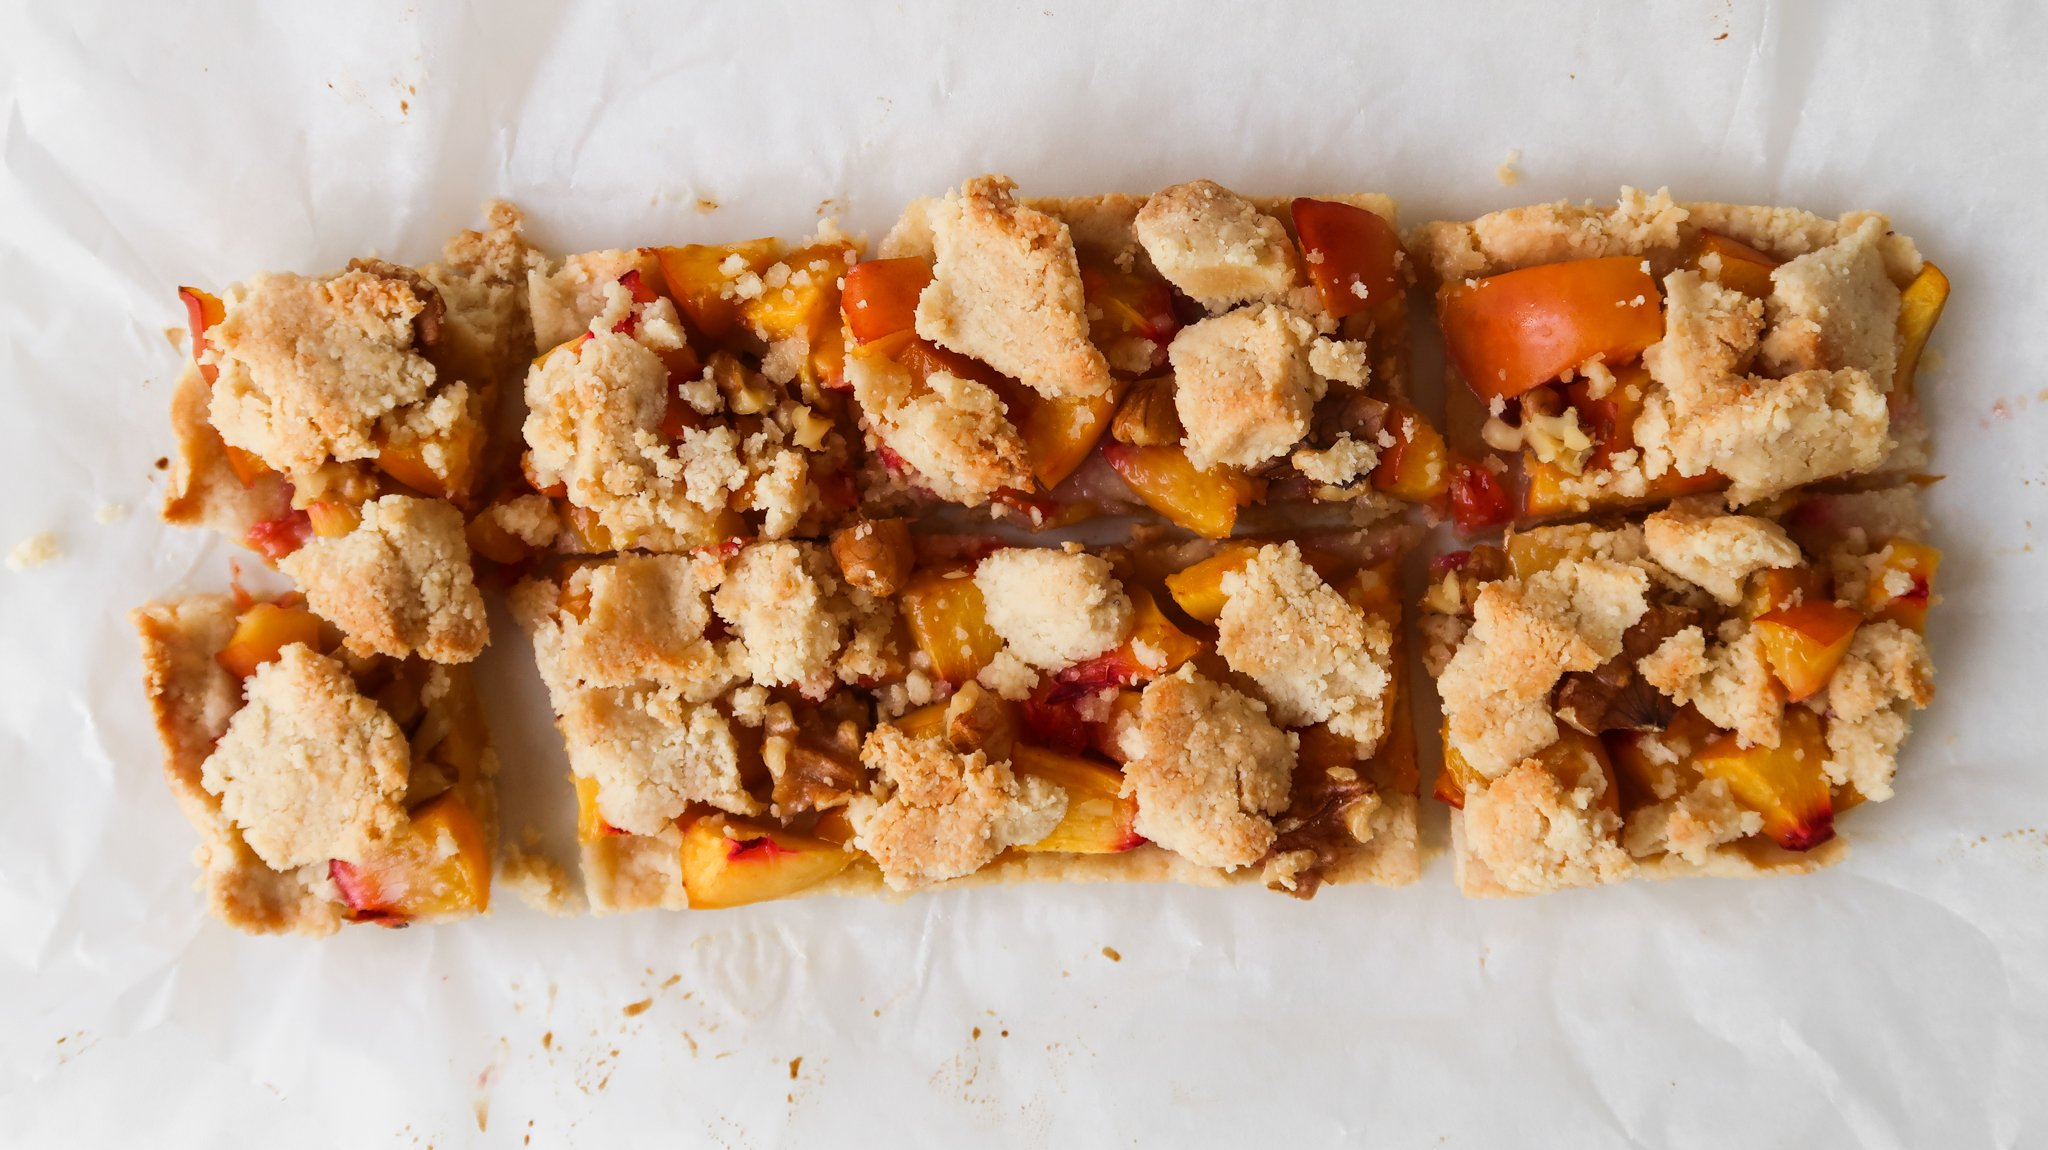 This healthy peach crumble bars recipe is made with simple ingredients, no refined sugar, is gluten-free, dairy-free, paleo and vegan. This is such an easy peach dessert recipe that gets better in the fridge! Easy and healthy peach recipe for snack or breakfast that you can make in 20 minutes.